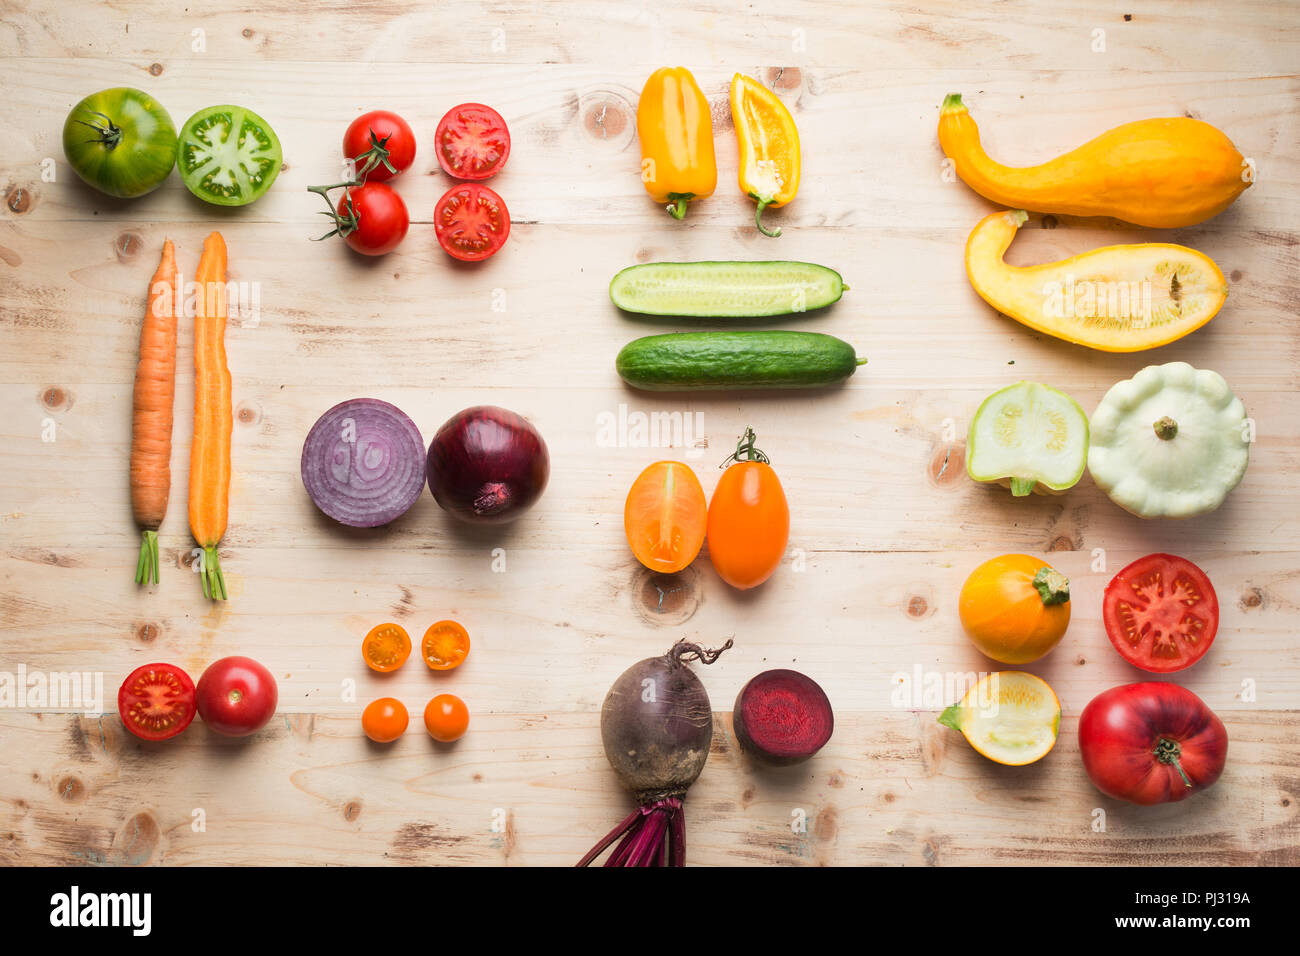 Creative food background in a grid, assortment of fresh colorful organic vegetables whole and cut part on wooden pine table, vertical, top view, selective focus - Stock Image